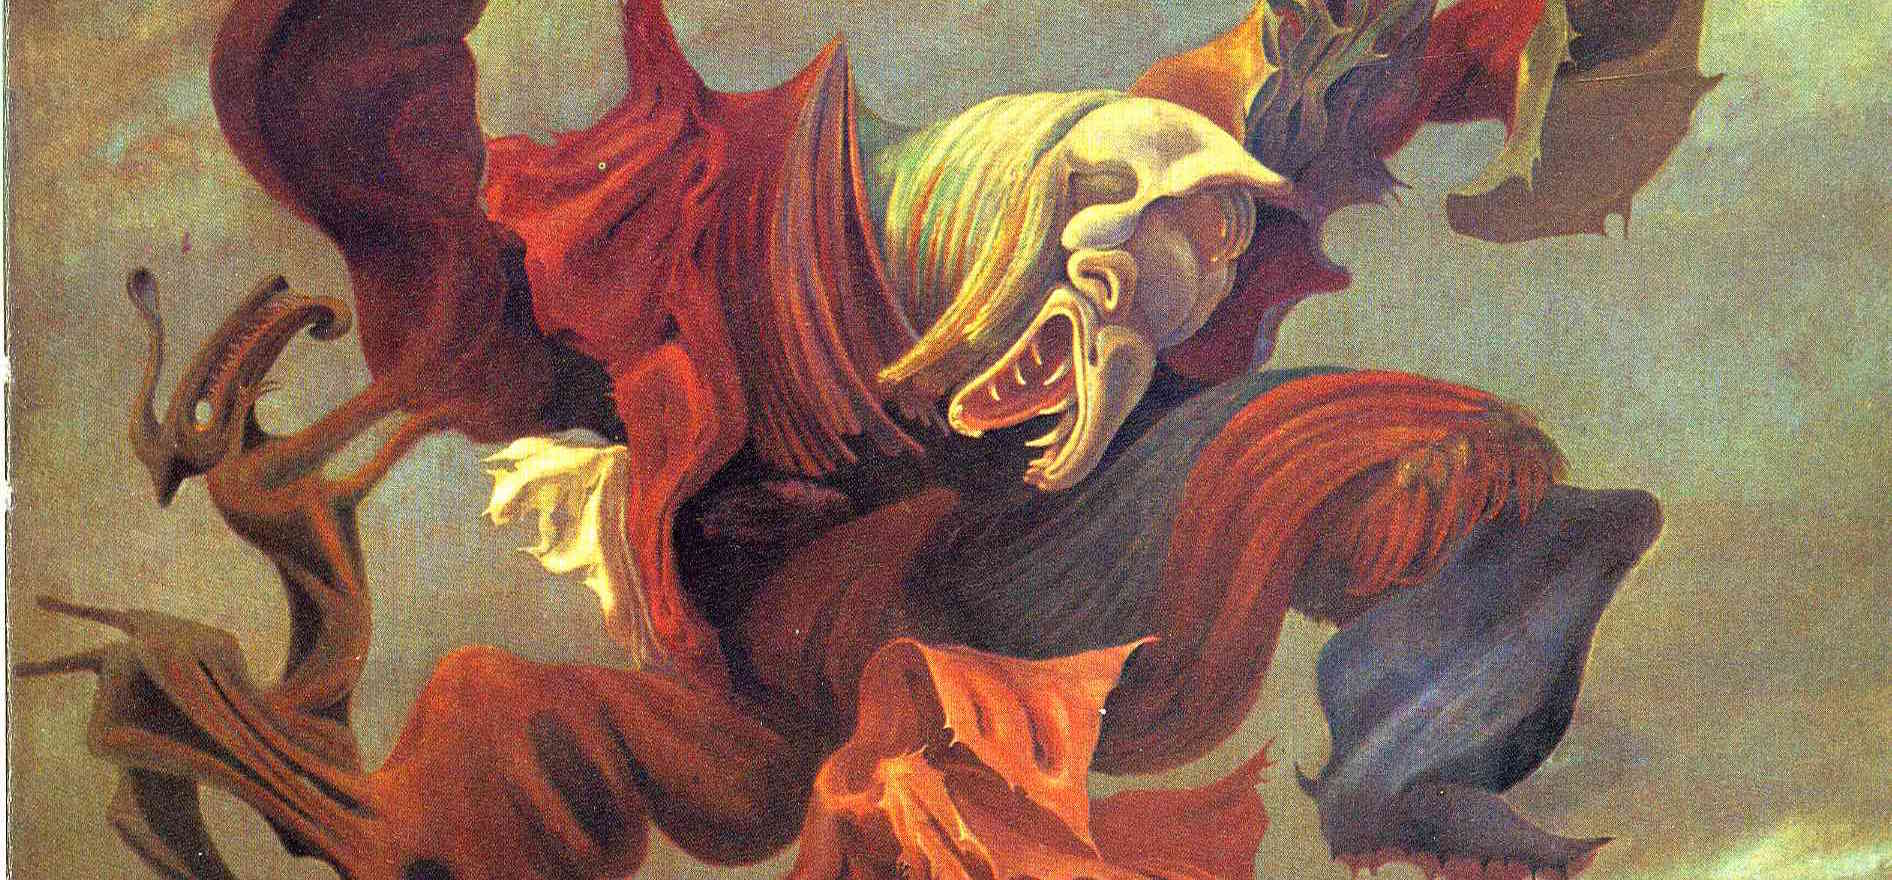 The Mind Altering Art Work Of: MAX ERNST